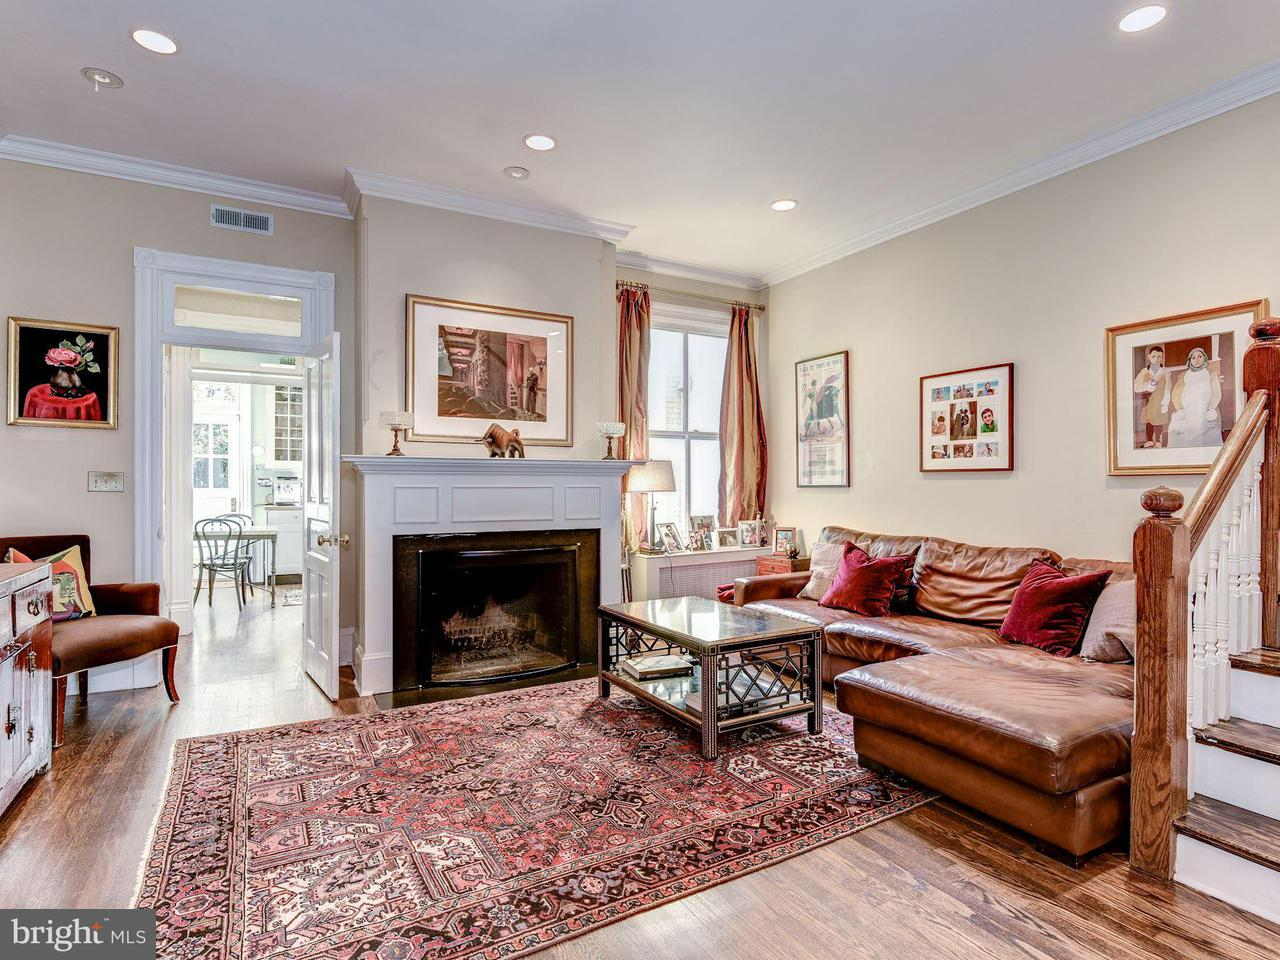 Additional photo for property listing at 3280 N St Nw 3280 N St Nw Washington, District De Columbia 20007 États-Unis